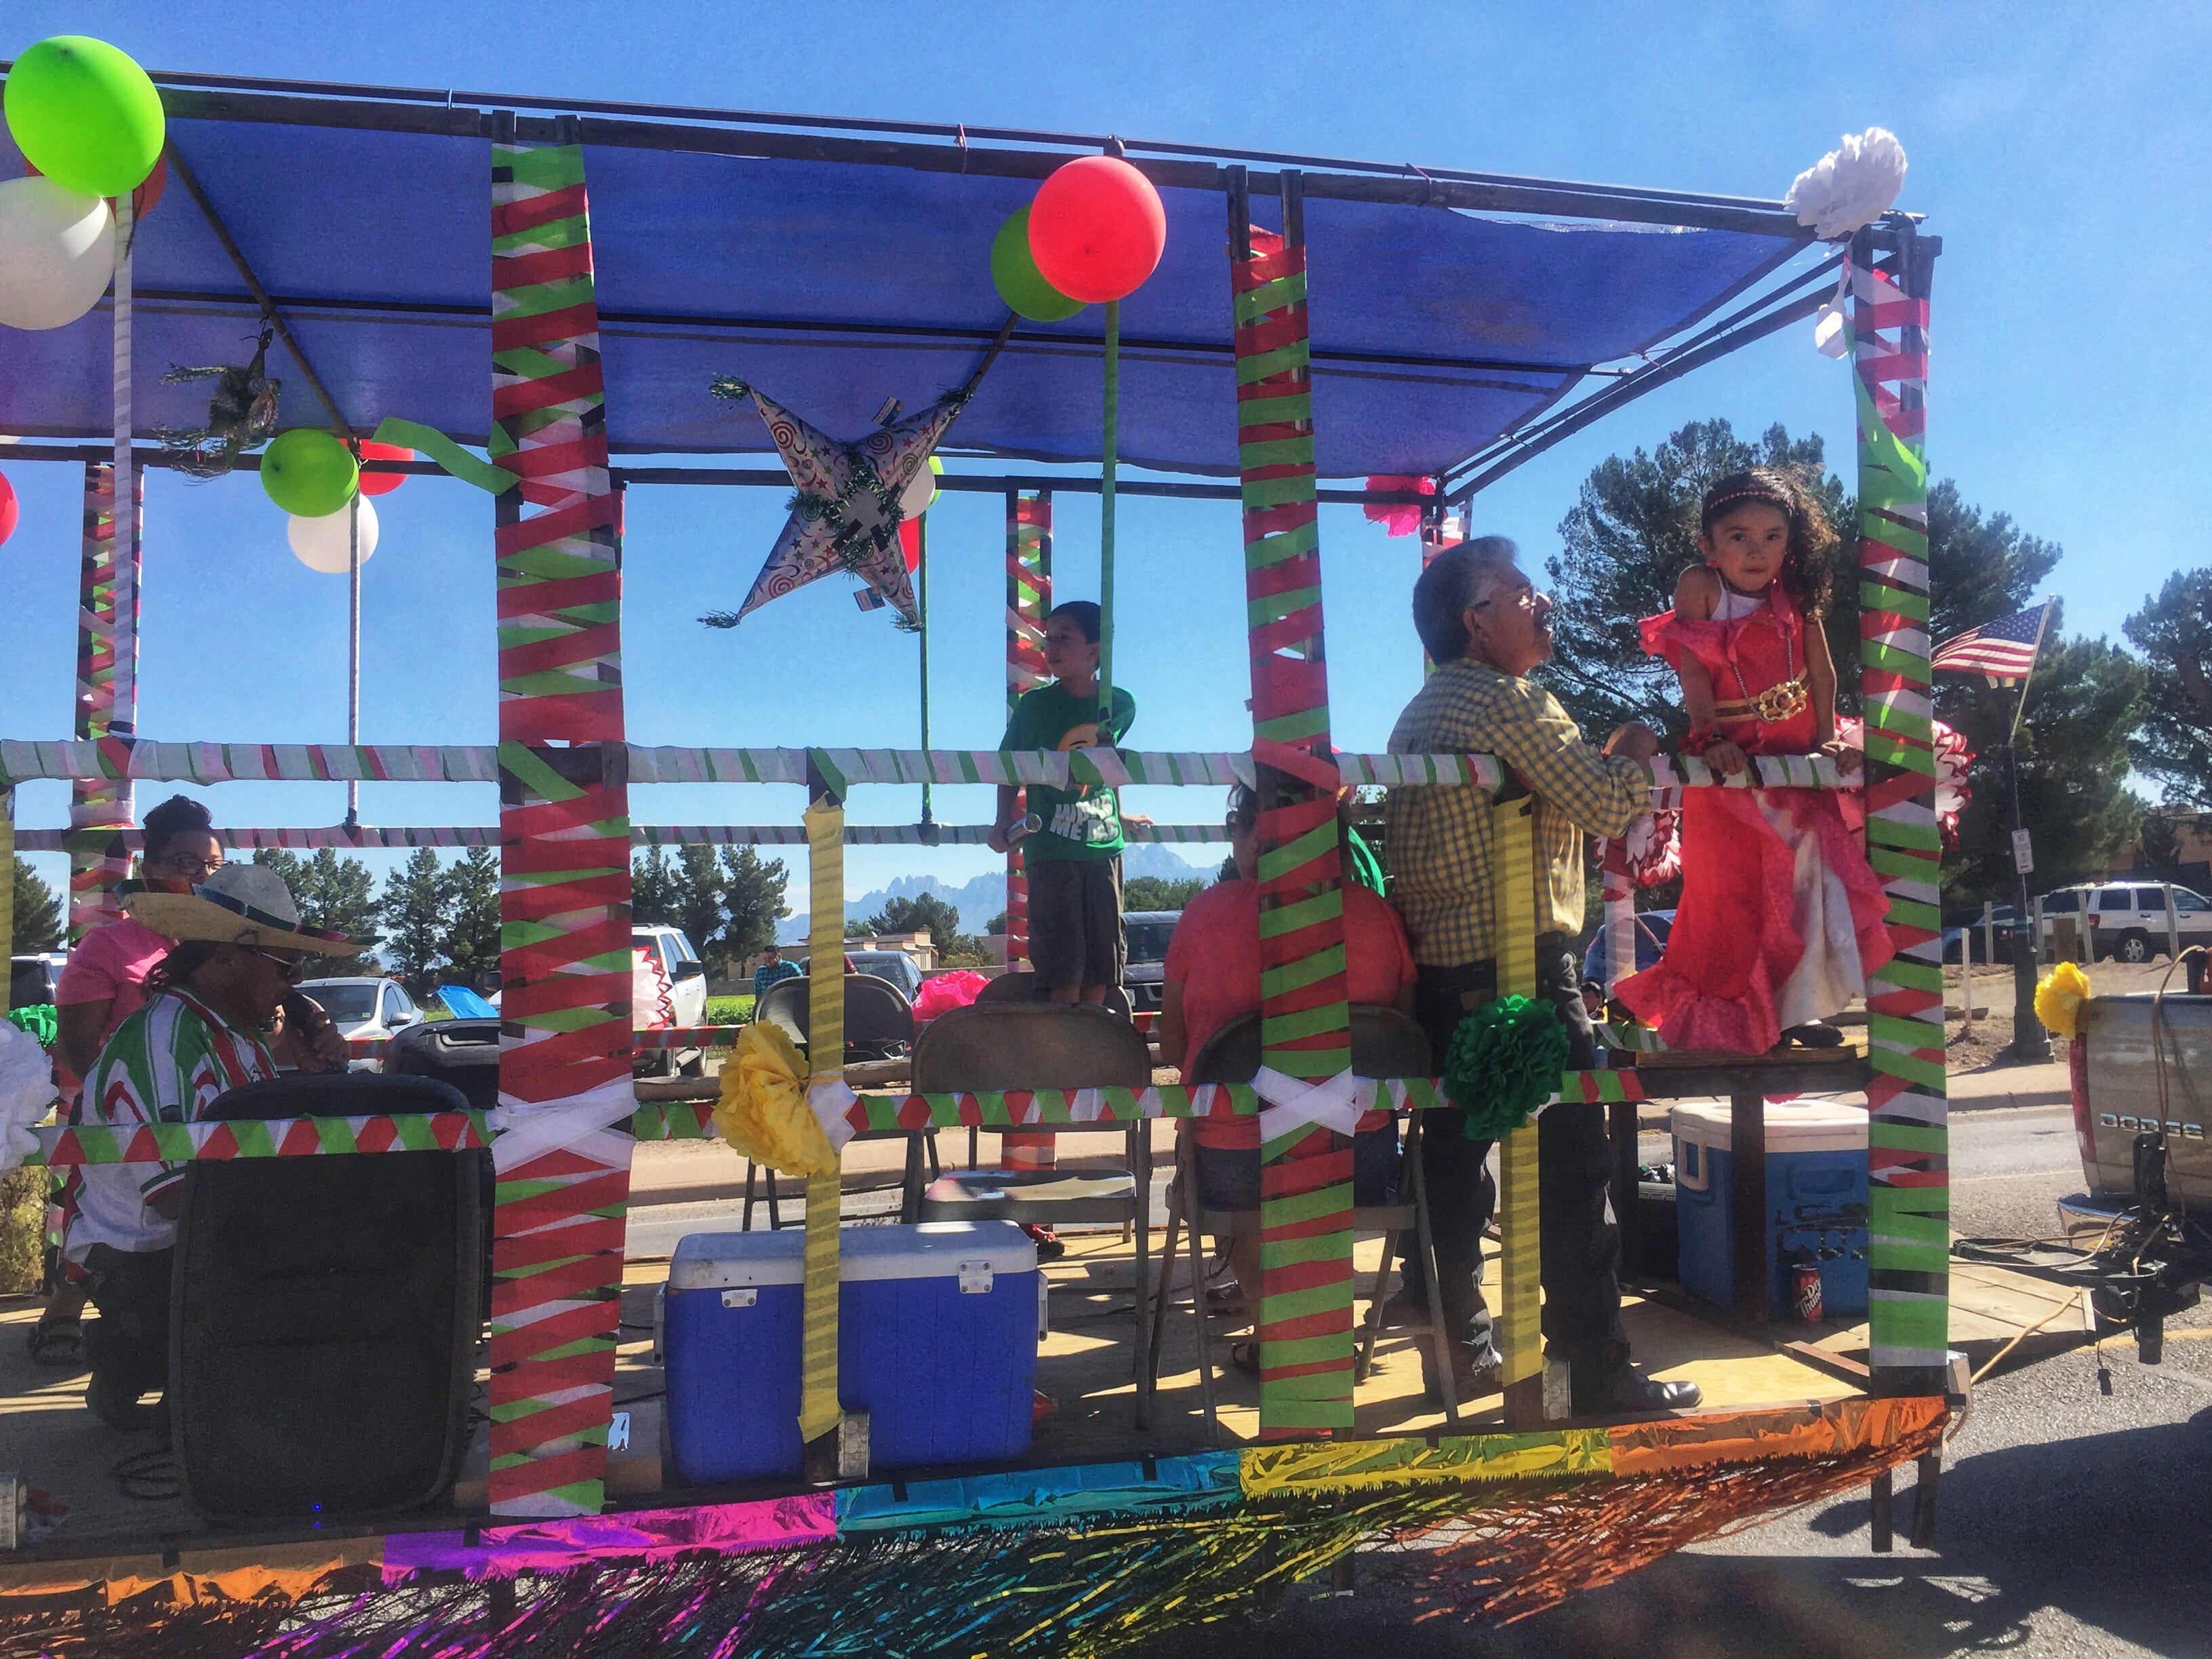 The Town of Mesilla celebrated its annual Diez y Seis de Septiembre fiesta and parade this weekend to honor Mexican Independence Day. The parade kicked off at 10 a.m. Saturday along Avenida de Mesilla and ended at Four Points Gin. Parade participants waved and tossed candies to onlookers.